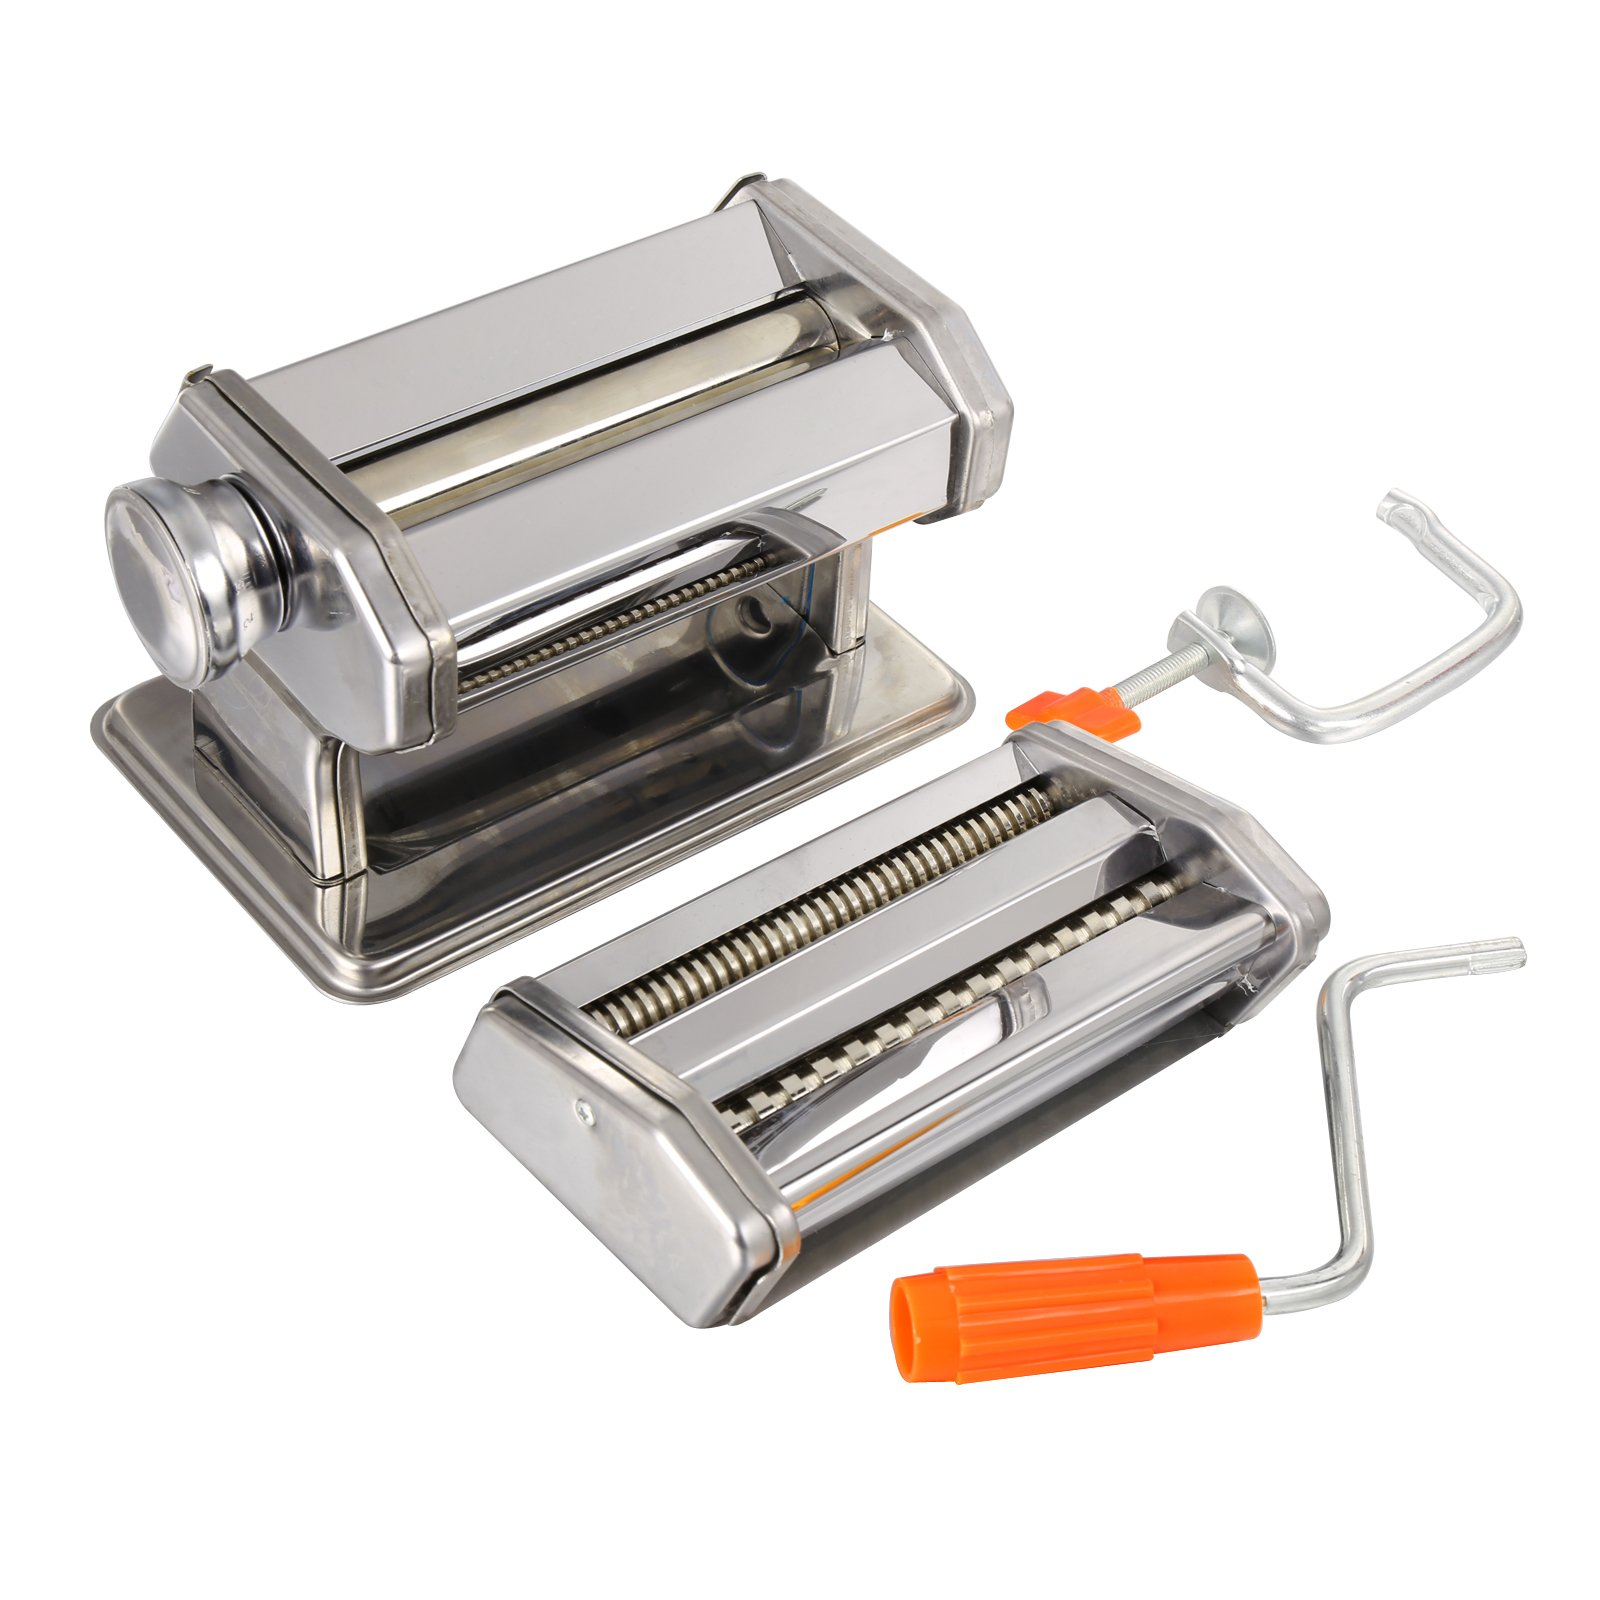 Pasta Maker Machine, Stainless Steel roller and cutter for Spaghetti , Fettuccine and Noodle , include 2 Blades (TYPE B) by Jaketen (Image #4)